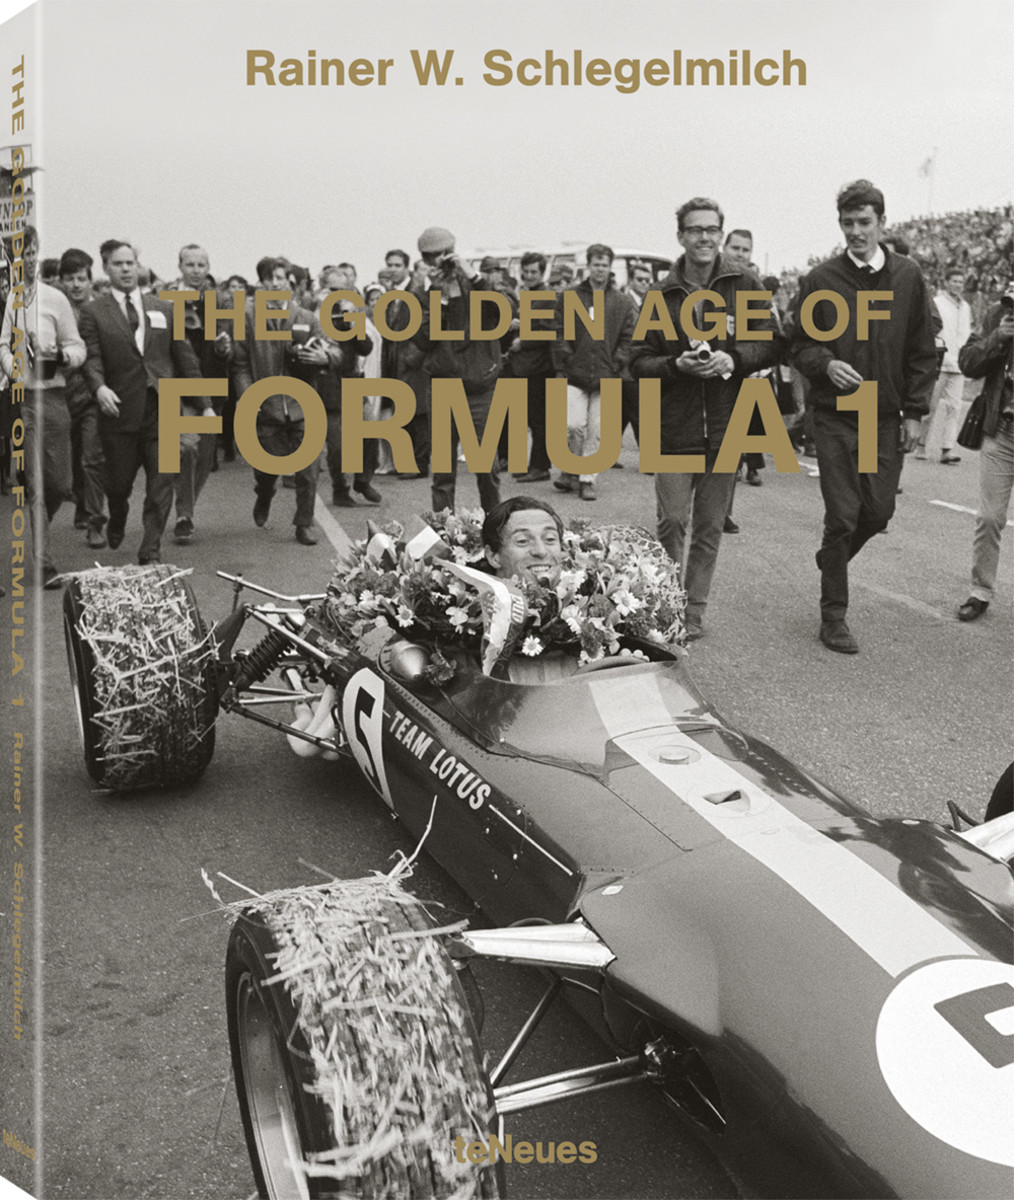 © The Golden Age of Formula 1 by Rainer W. Schlegelmilch, Small Format Edition, published by teNeues, $45 - www.teneues.com